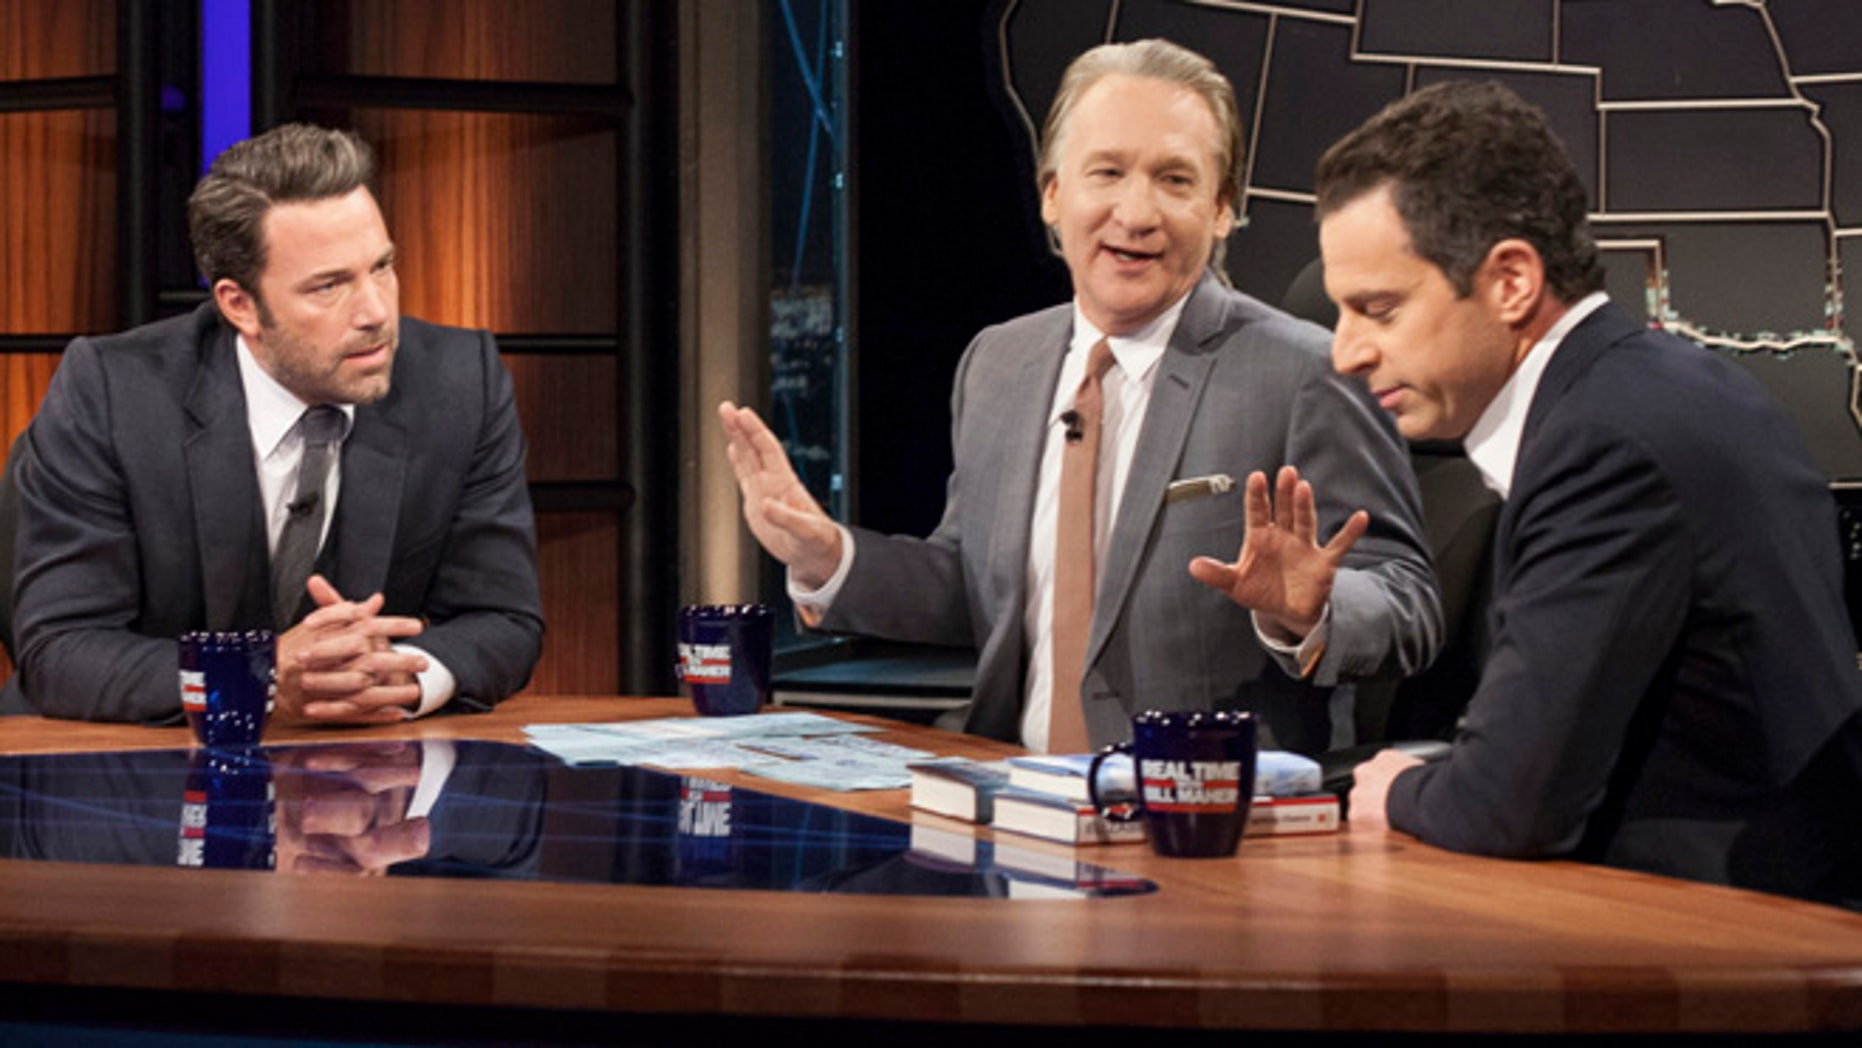 "In this Friday, Oct. 3, 2014, image released by HBO, host Bill Maher, center, talks with actor Ben Affleck, left, and Sam Harris, author of ""Waking Up: A Guide to Spirituality Without Religion"", during ""Real Time With Bill Maher,"" in Los Angeles. (AP Photo/HBO) ORG XMIT: NY114"